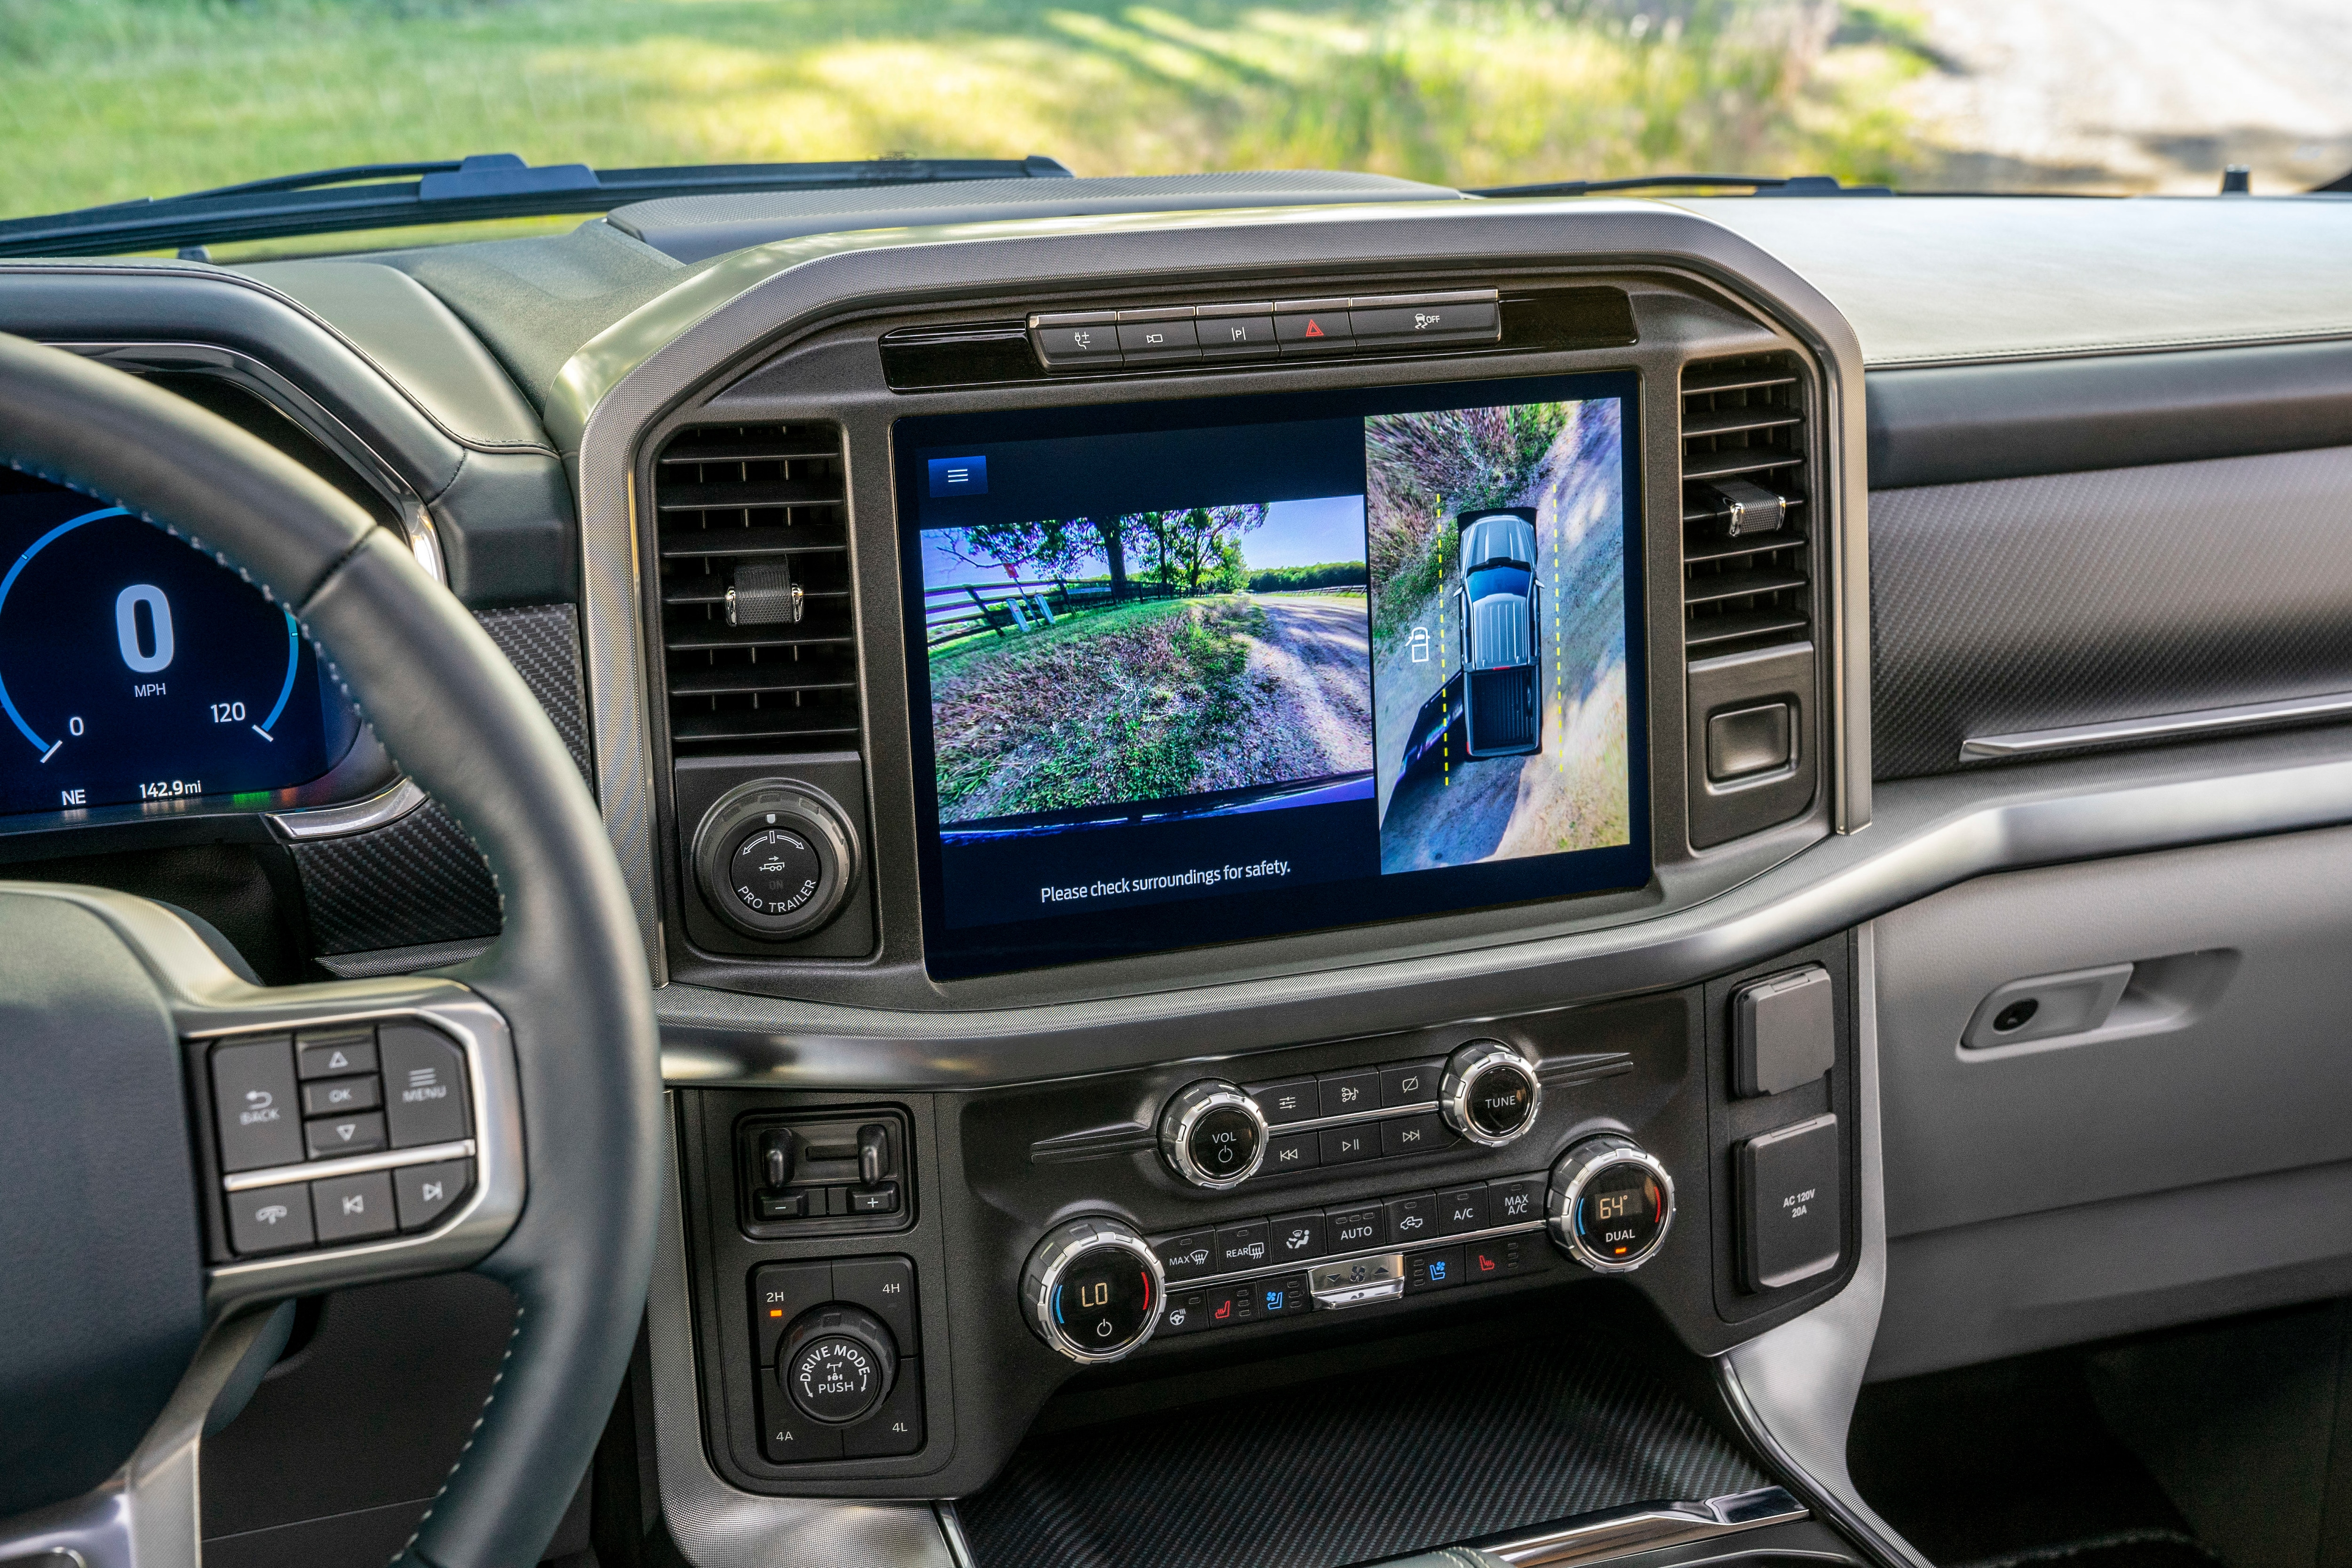 F-150 introduces an all-new 12-inch centre screen – standard on XLT high series and above – that allows customers to split the screen and control multiple functions simultaneously, including navigation, music or truck features. Besides, it also gets an 8-inch touch screen that provides rearview camera vision.